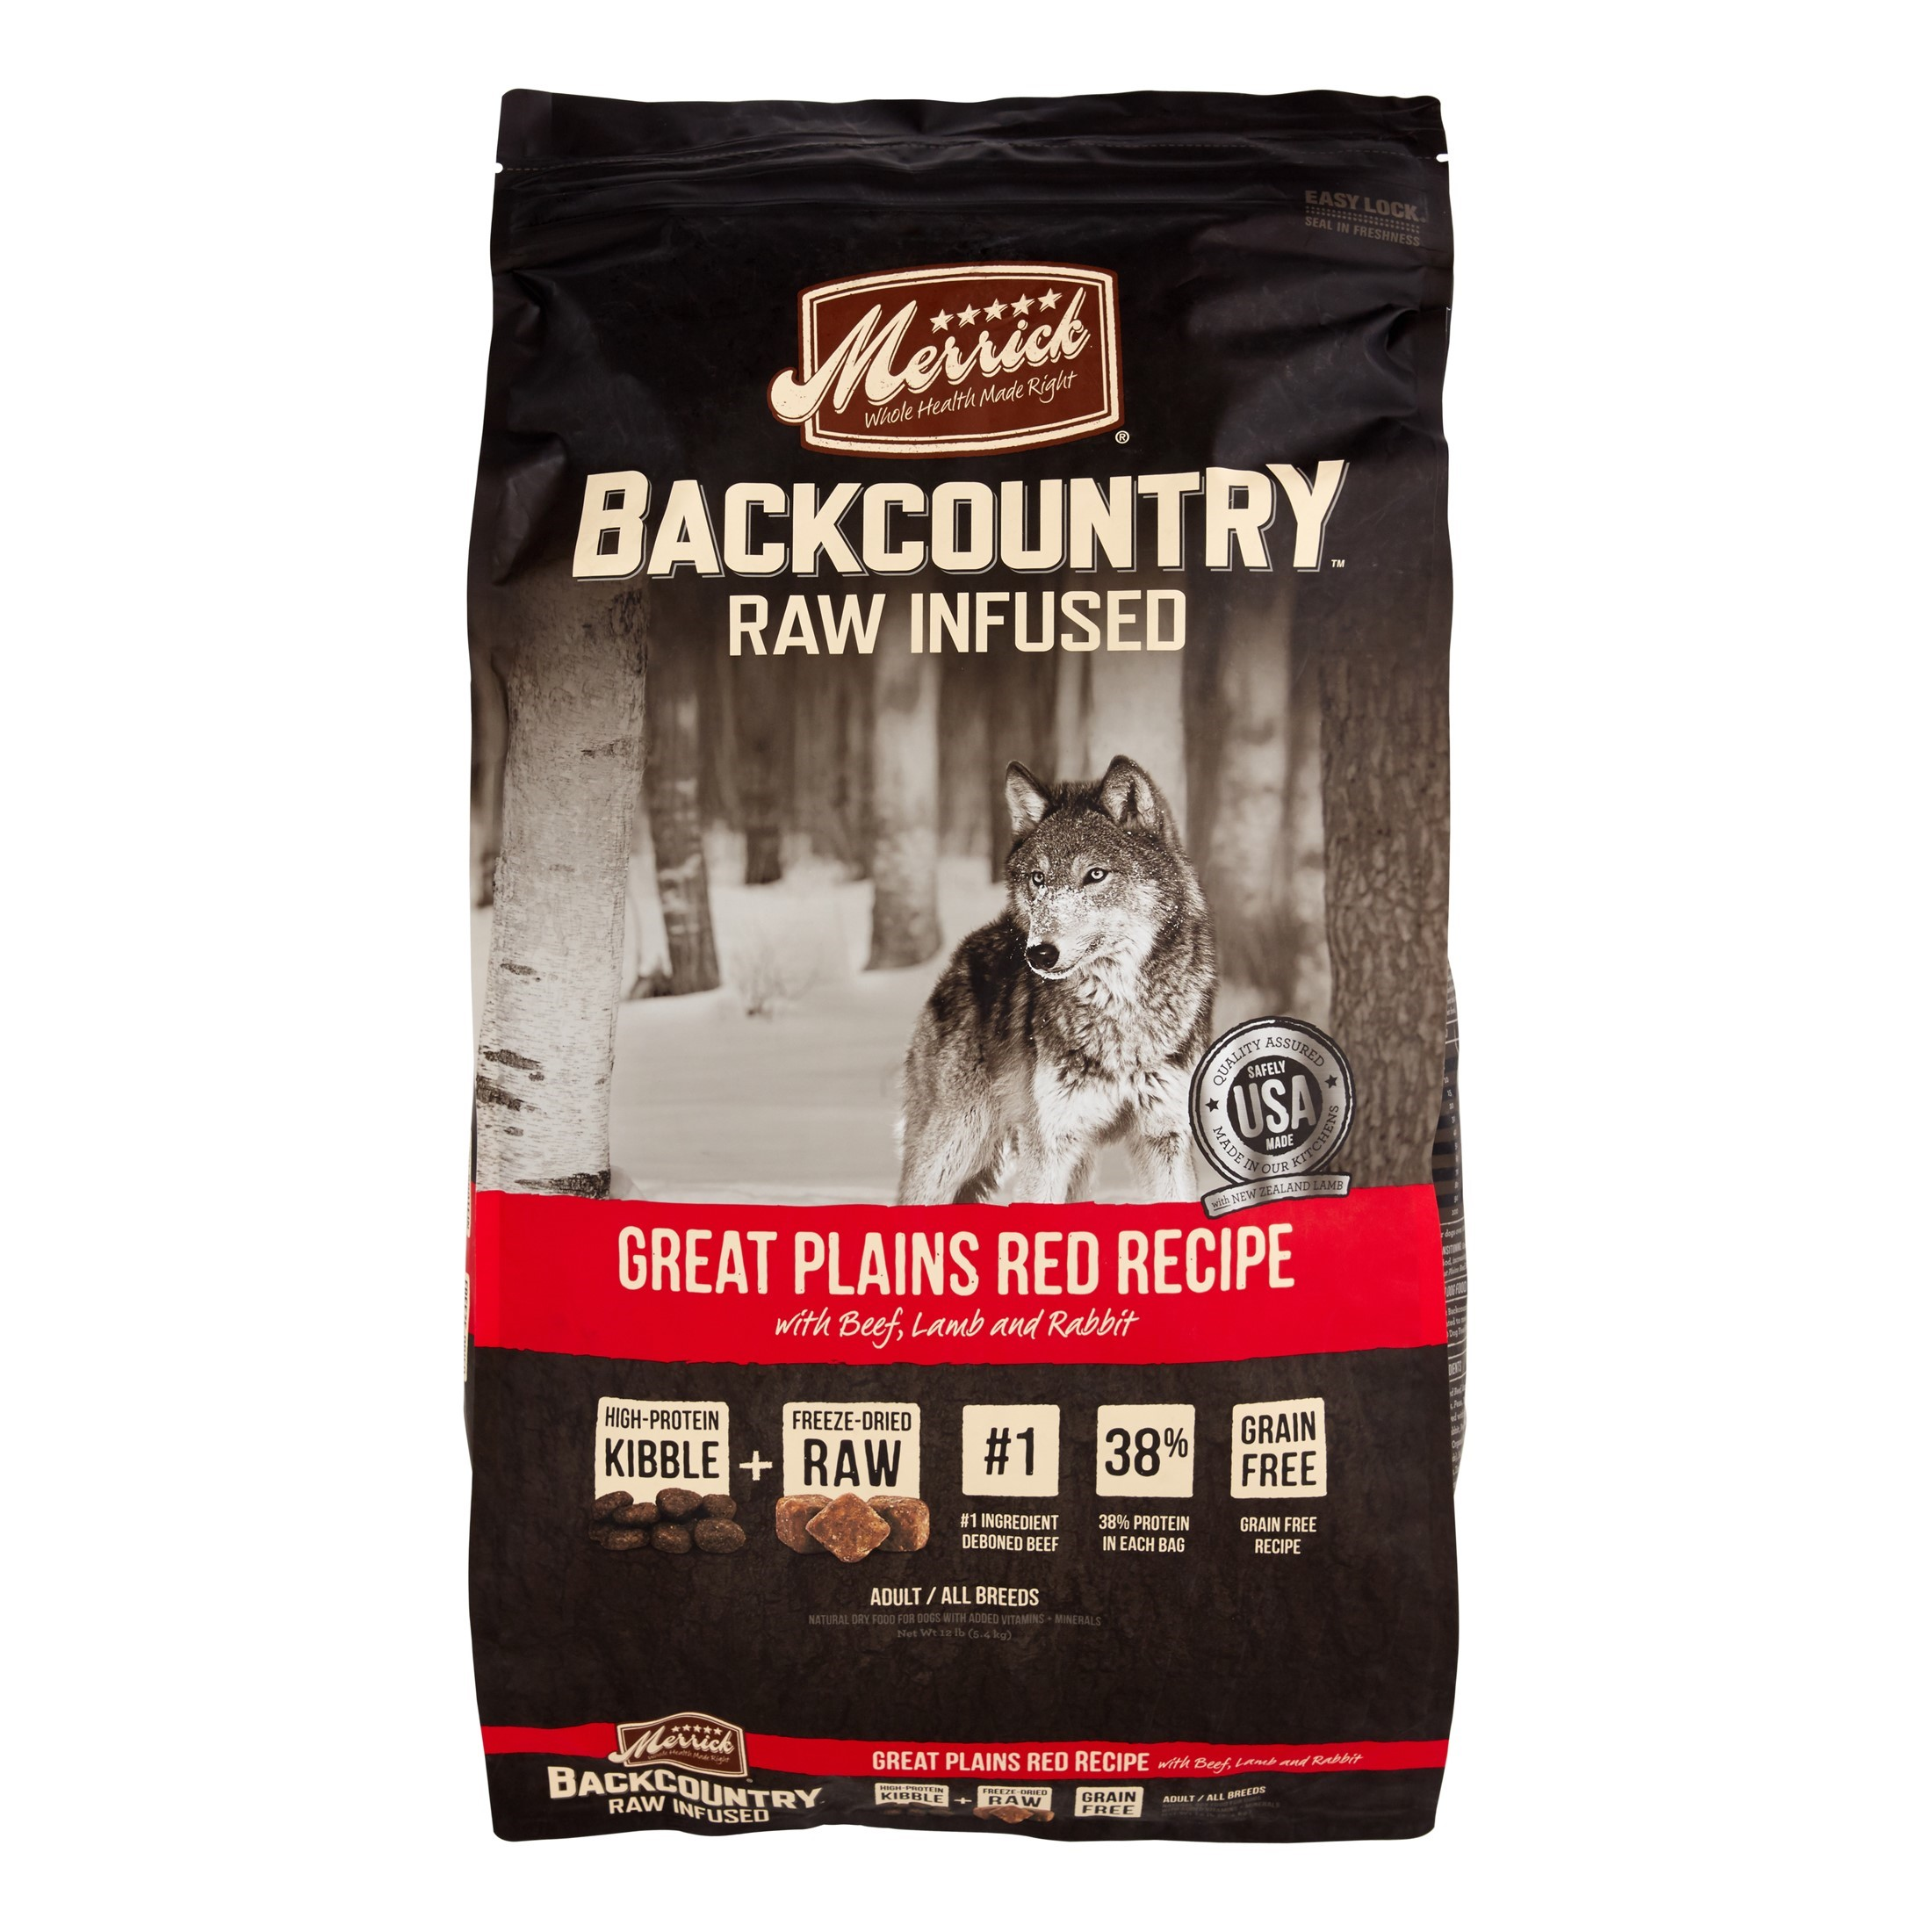 Merrick Backcountry Grain-Free Raw Infused Great Plains Red Recipe Dry Dog Food, 12 lb